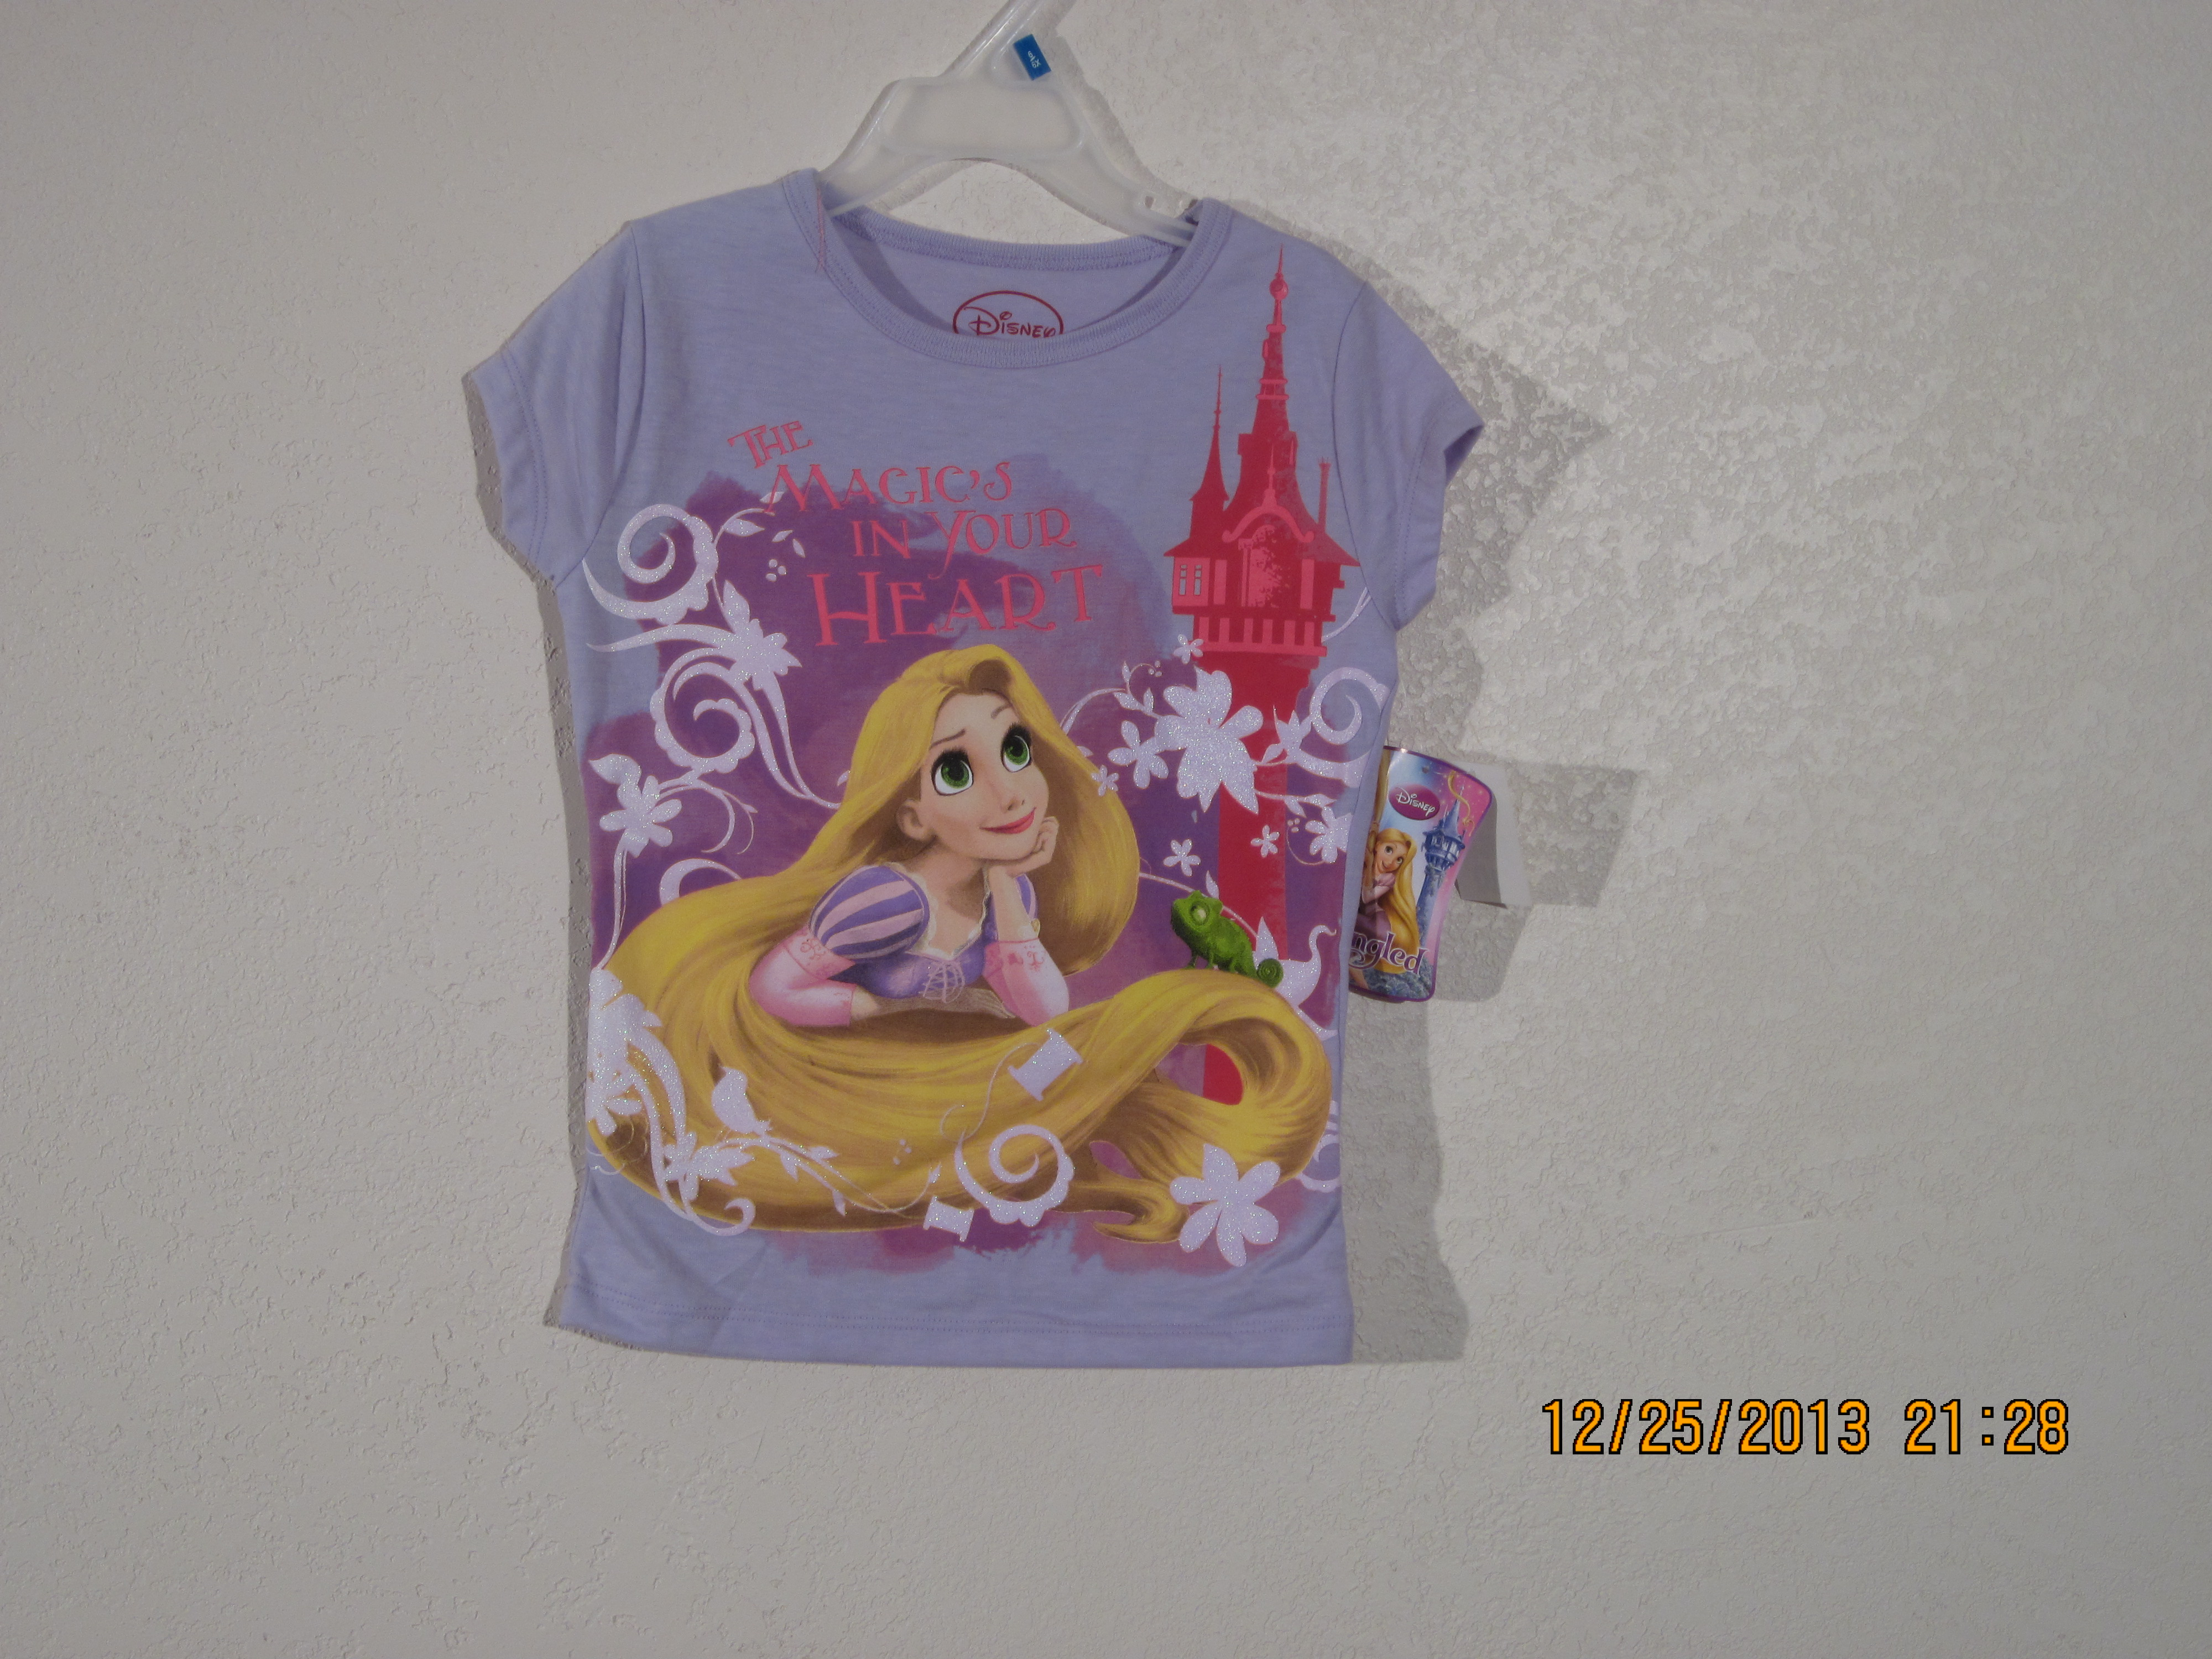 Disney Tangled Sz S 6-6X T-Shirt (purple)